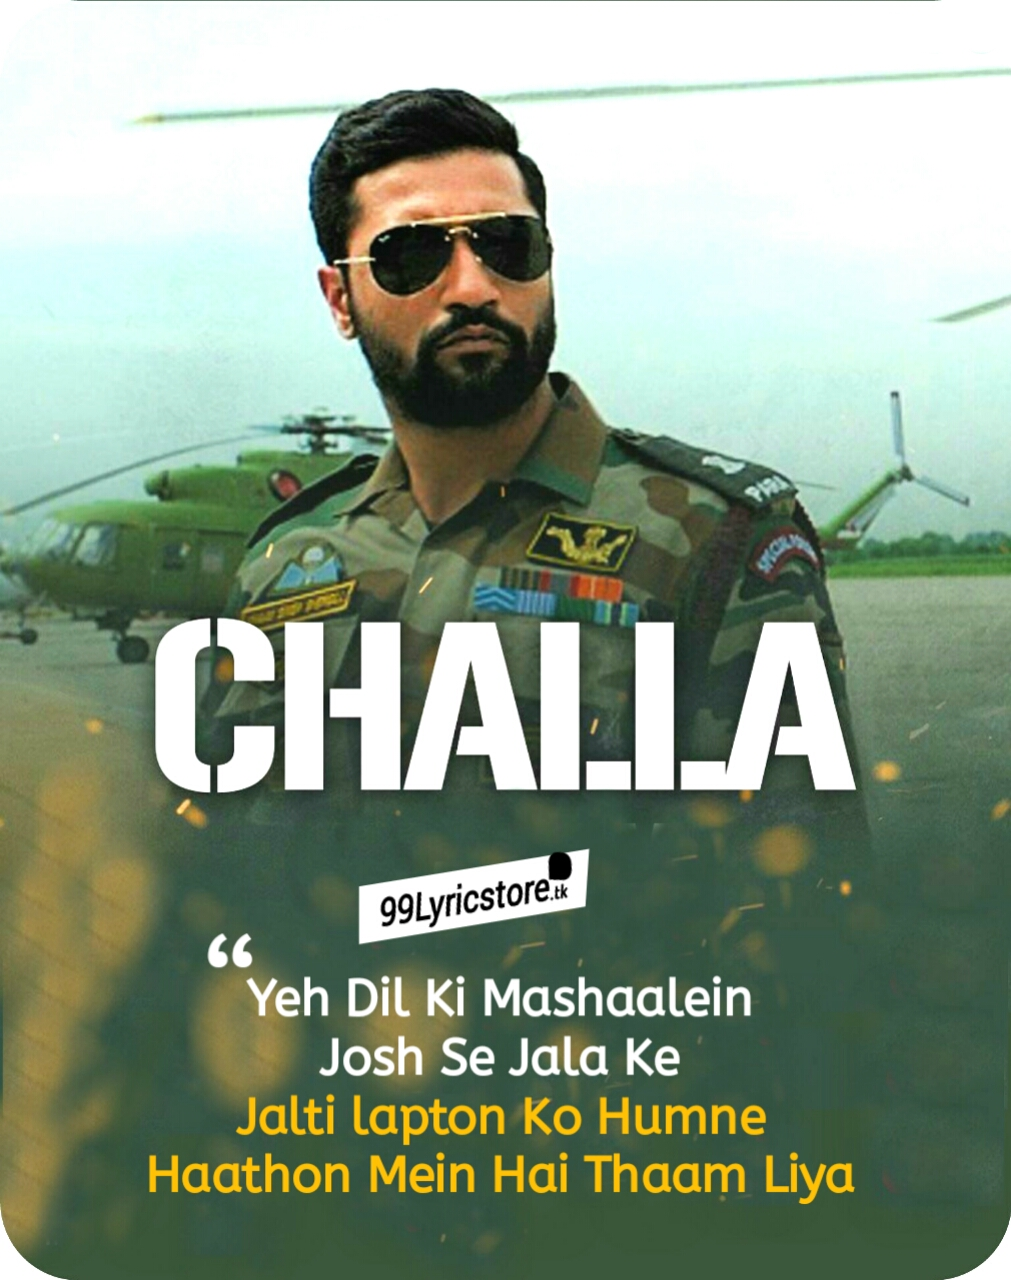 Challa (main lad jaana) Song Lyrics uri, Vicky Kaushal Song Lyrics uri, Yami Gautam Song Lyrics uri, URI Movie Song Challa (main lad jaana) Lyrics, URI Song images, Latest movie URI Song Lyrics, URI Challa (Main Lad Jaana) Lyrics, Vicky Kaushal, Yami Gautam and Paresh Rawal, Army Song Lyrics